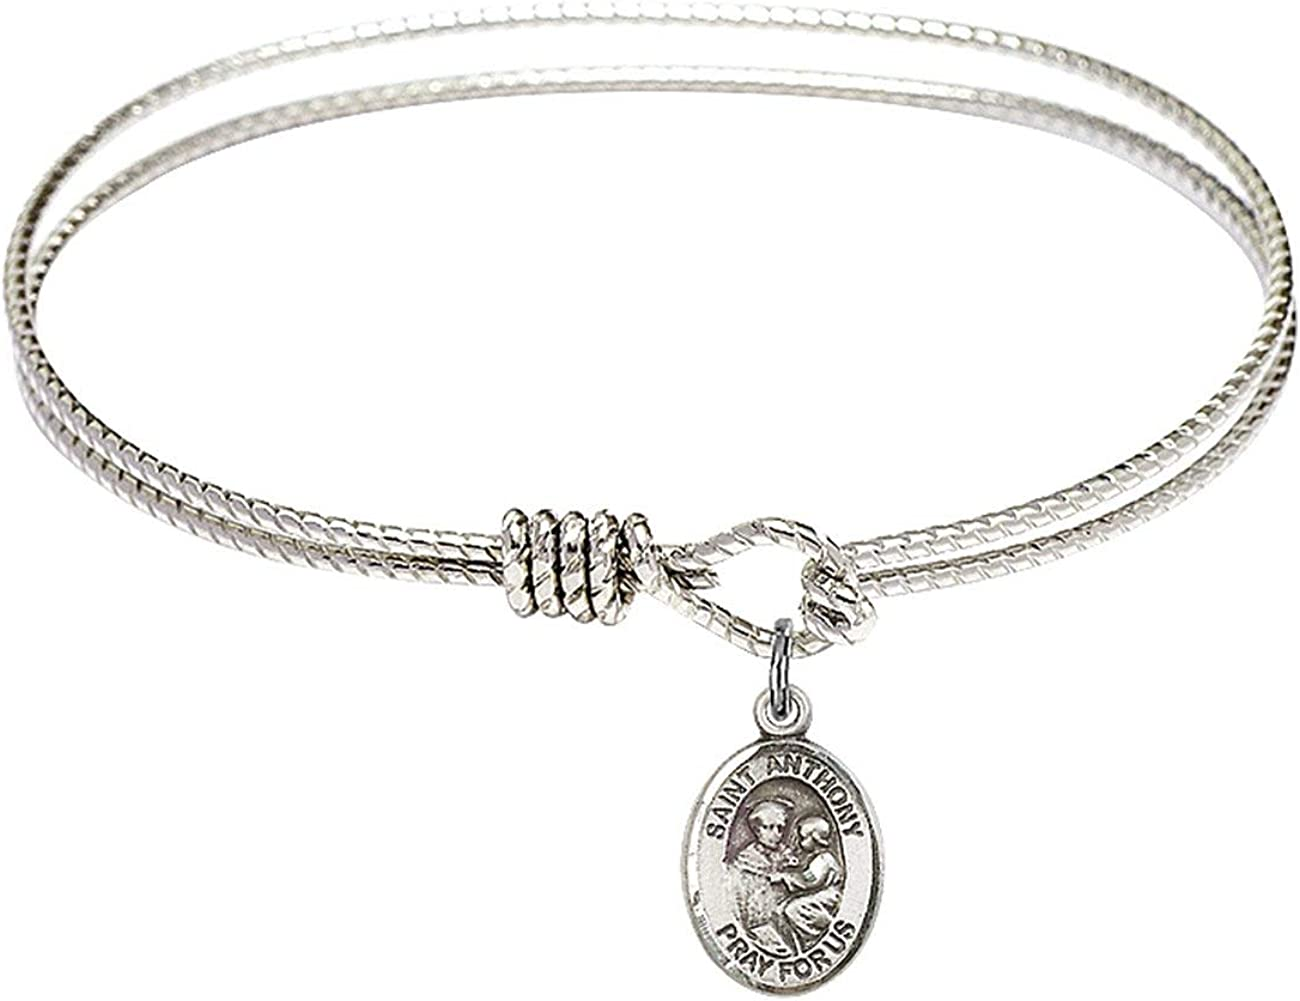 Bonyak Jewelry Oval At the price of surprise Eye Hook Bangle Bracelet Anthony St. w Pa Popular brand in the world